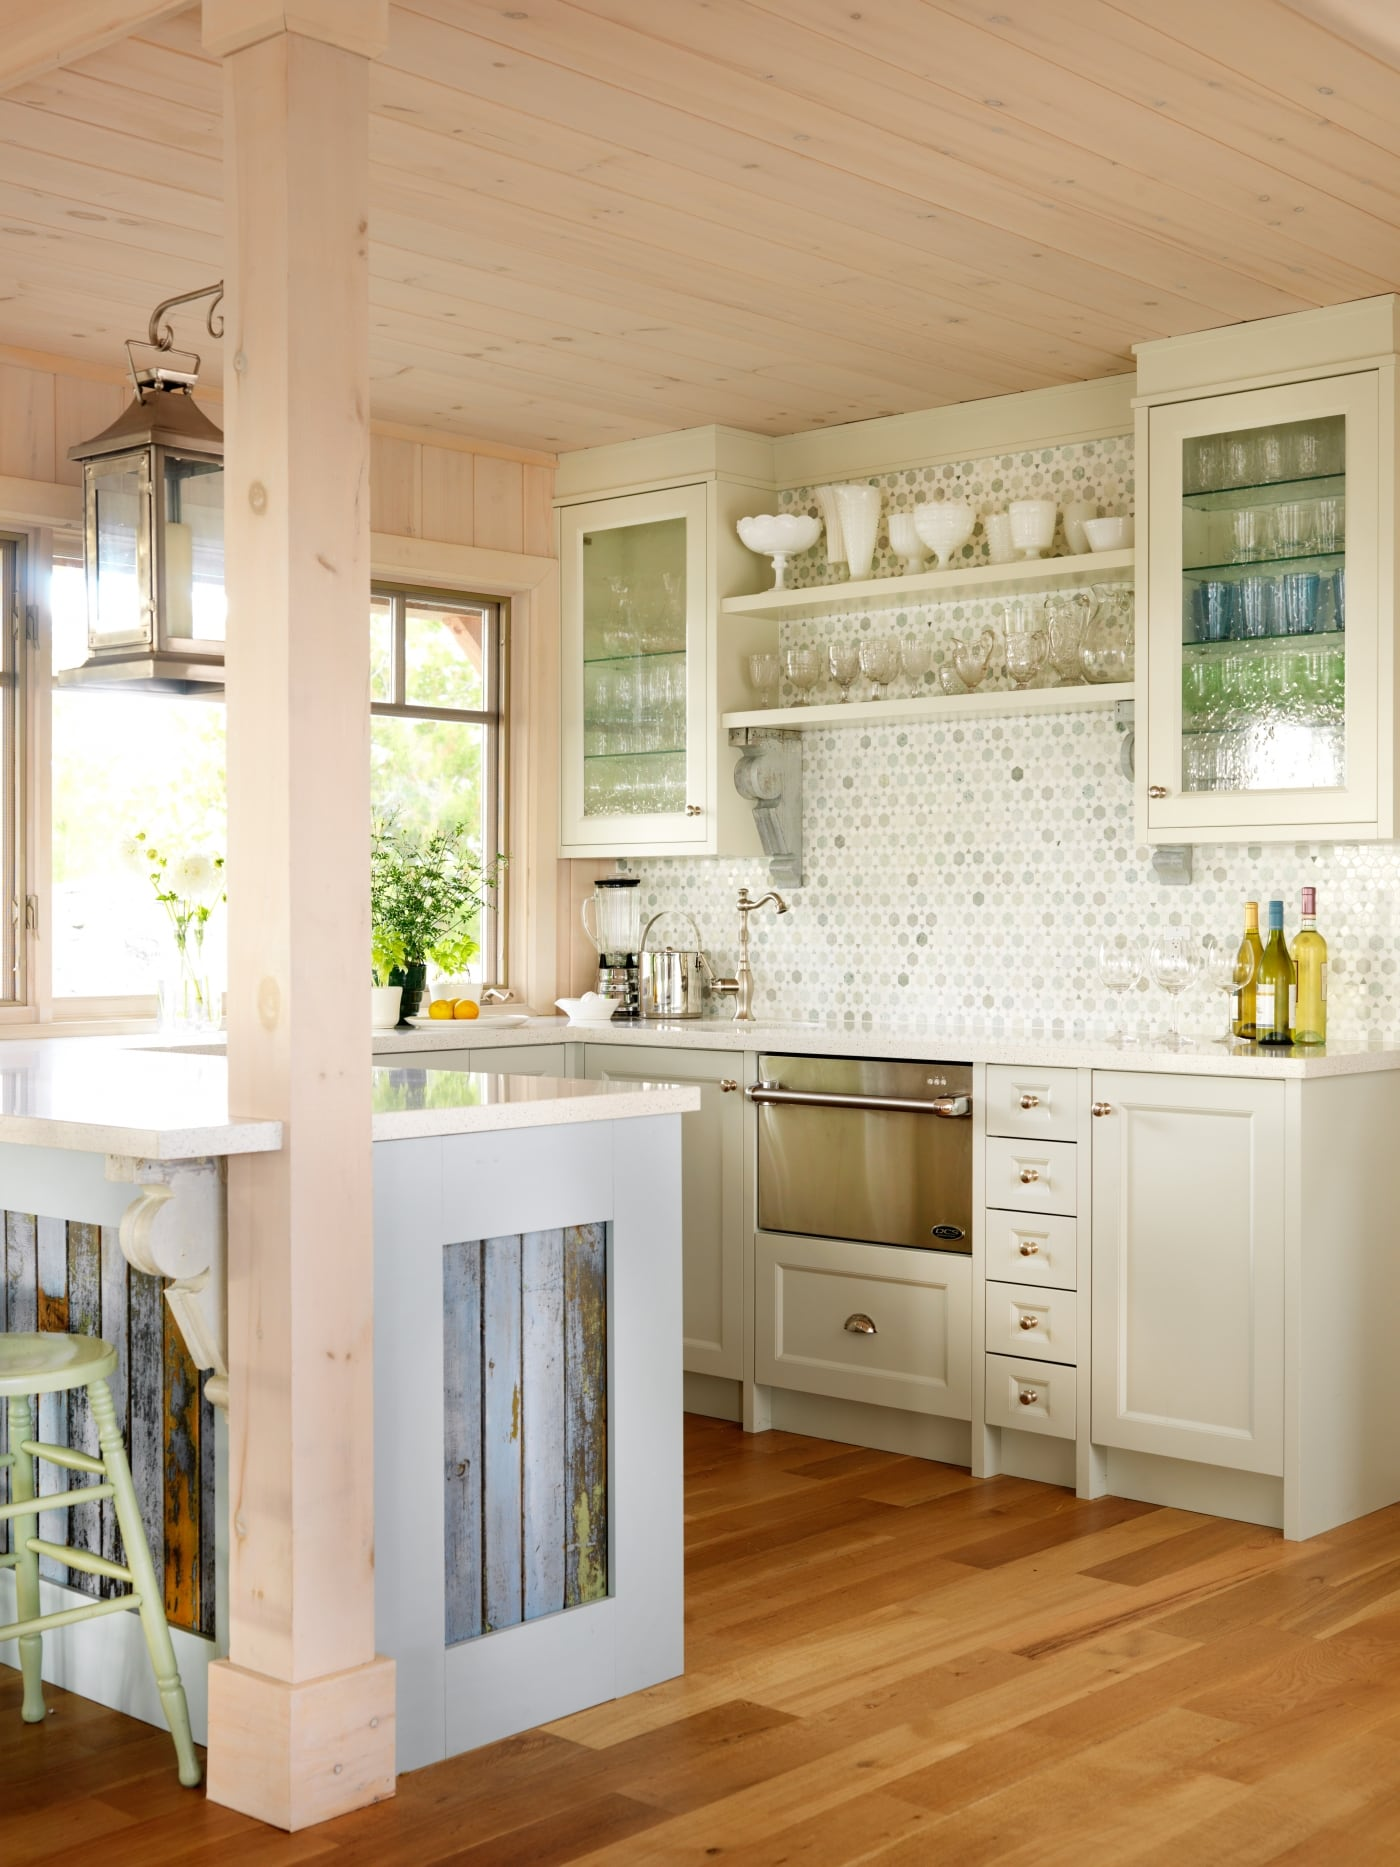 Wet bar with built in dishwasher and see through glass cabinets. #SarahRichardson #cottagestyle